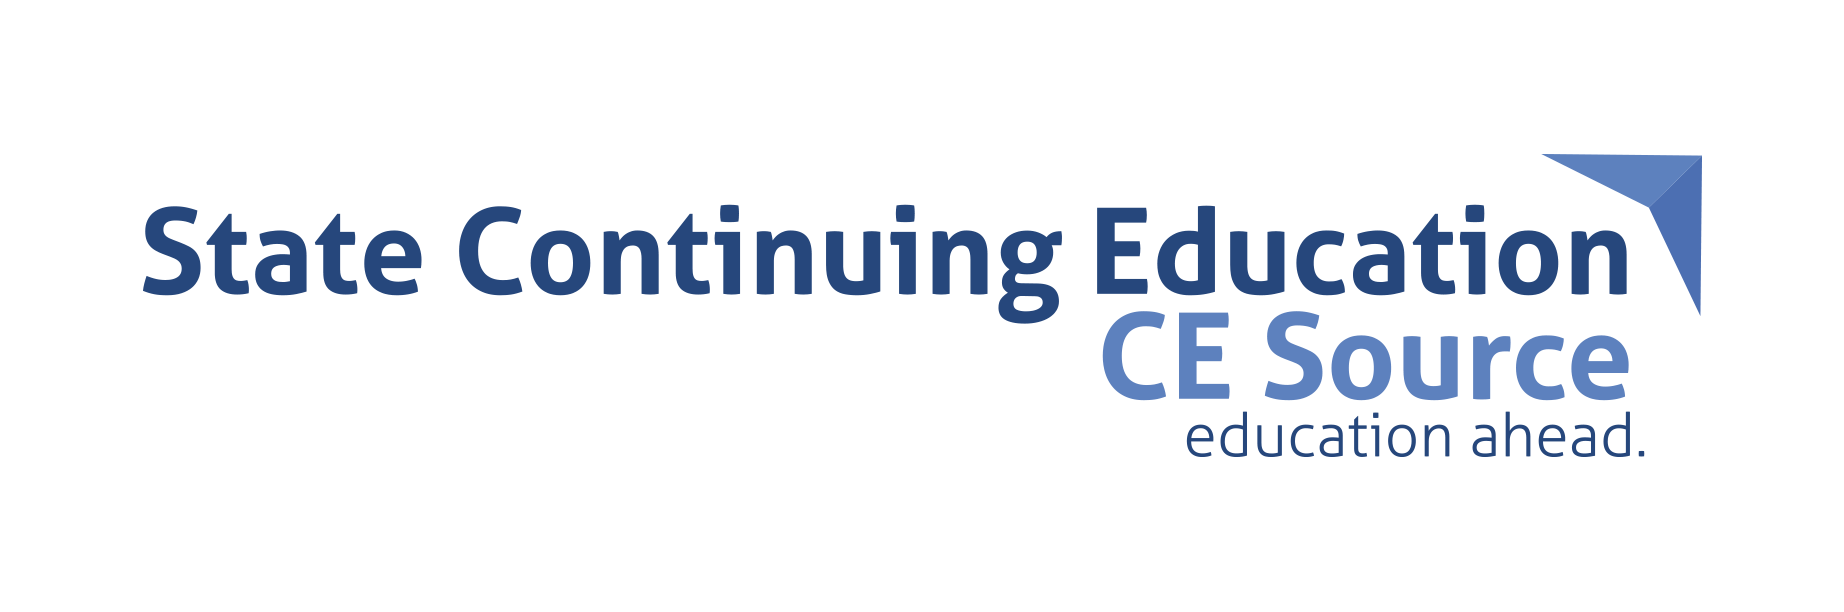 471814bfc53 State Continuing Education and CE Source - Affordable real estate online continuing  education.